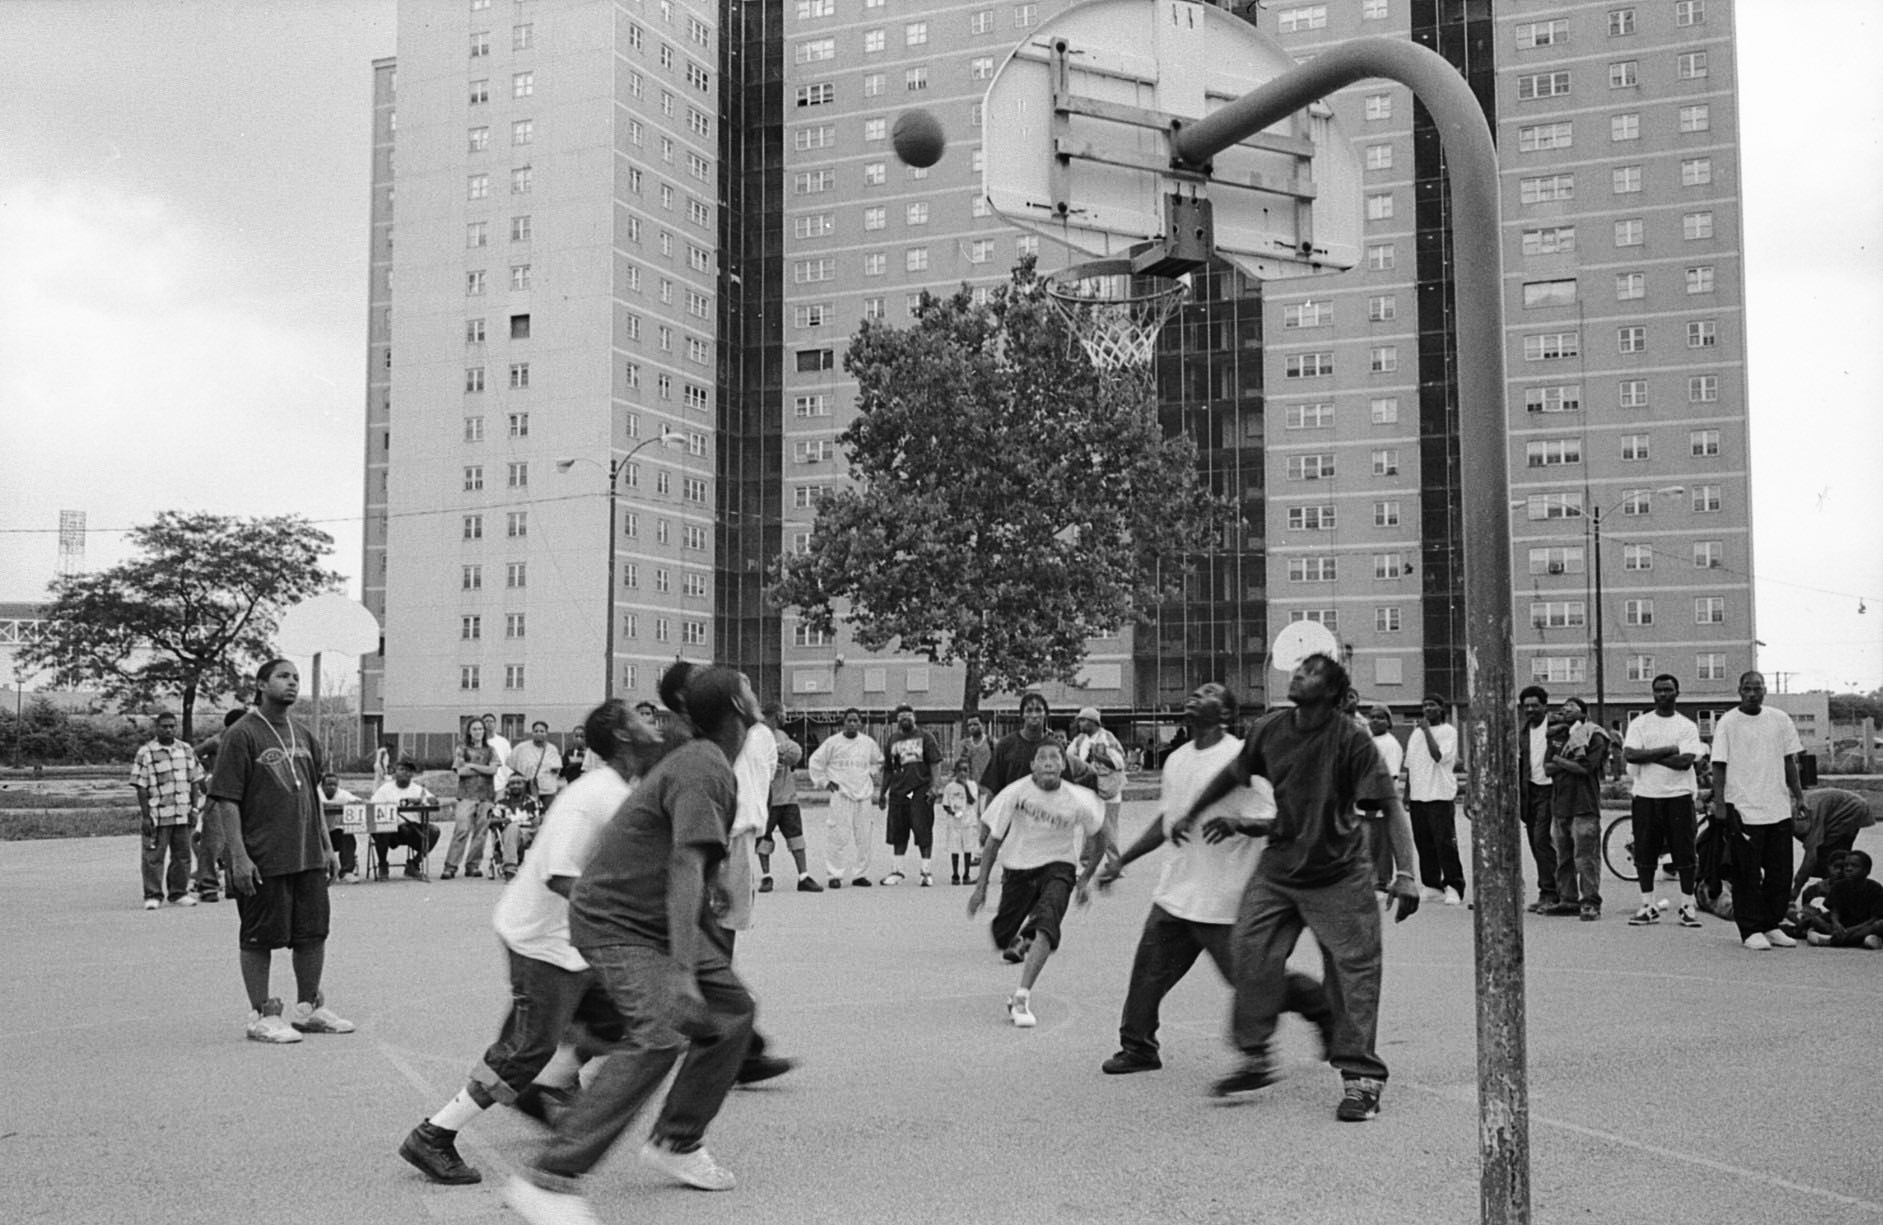 Basketball tournament organized by young men at Stateway Gardens.  PHOTO BY PATRICIA EVANS